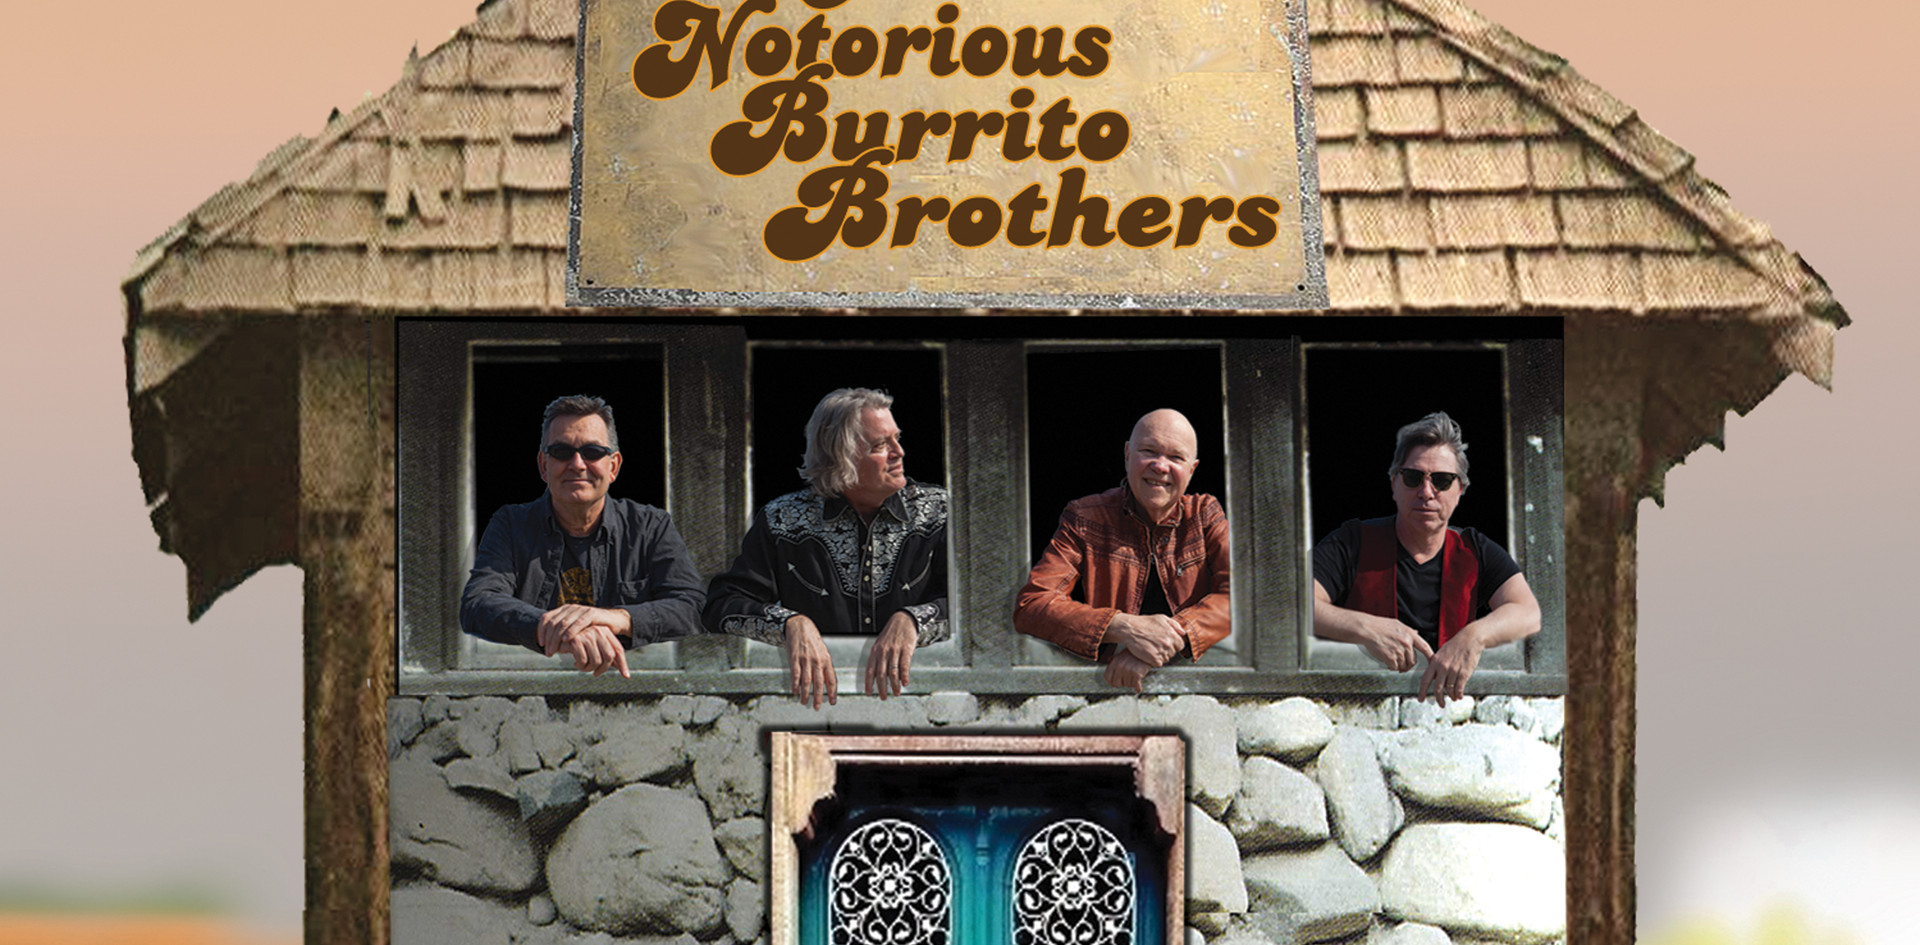 The Notorious Burrito Brothers.jpg